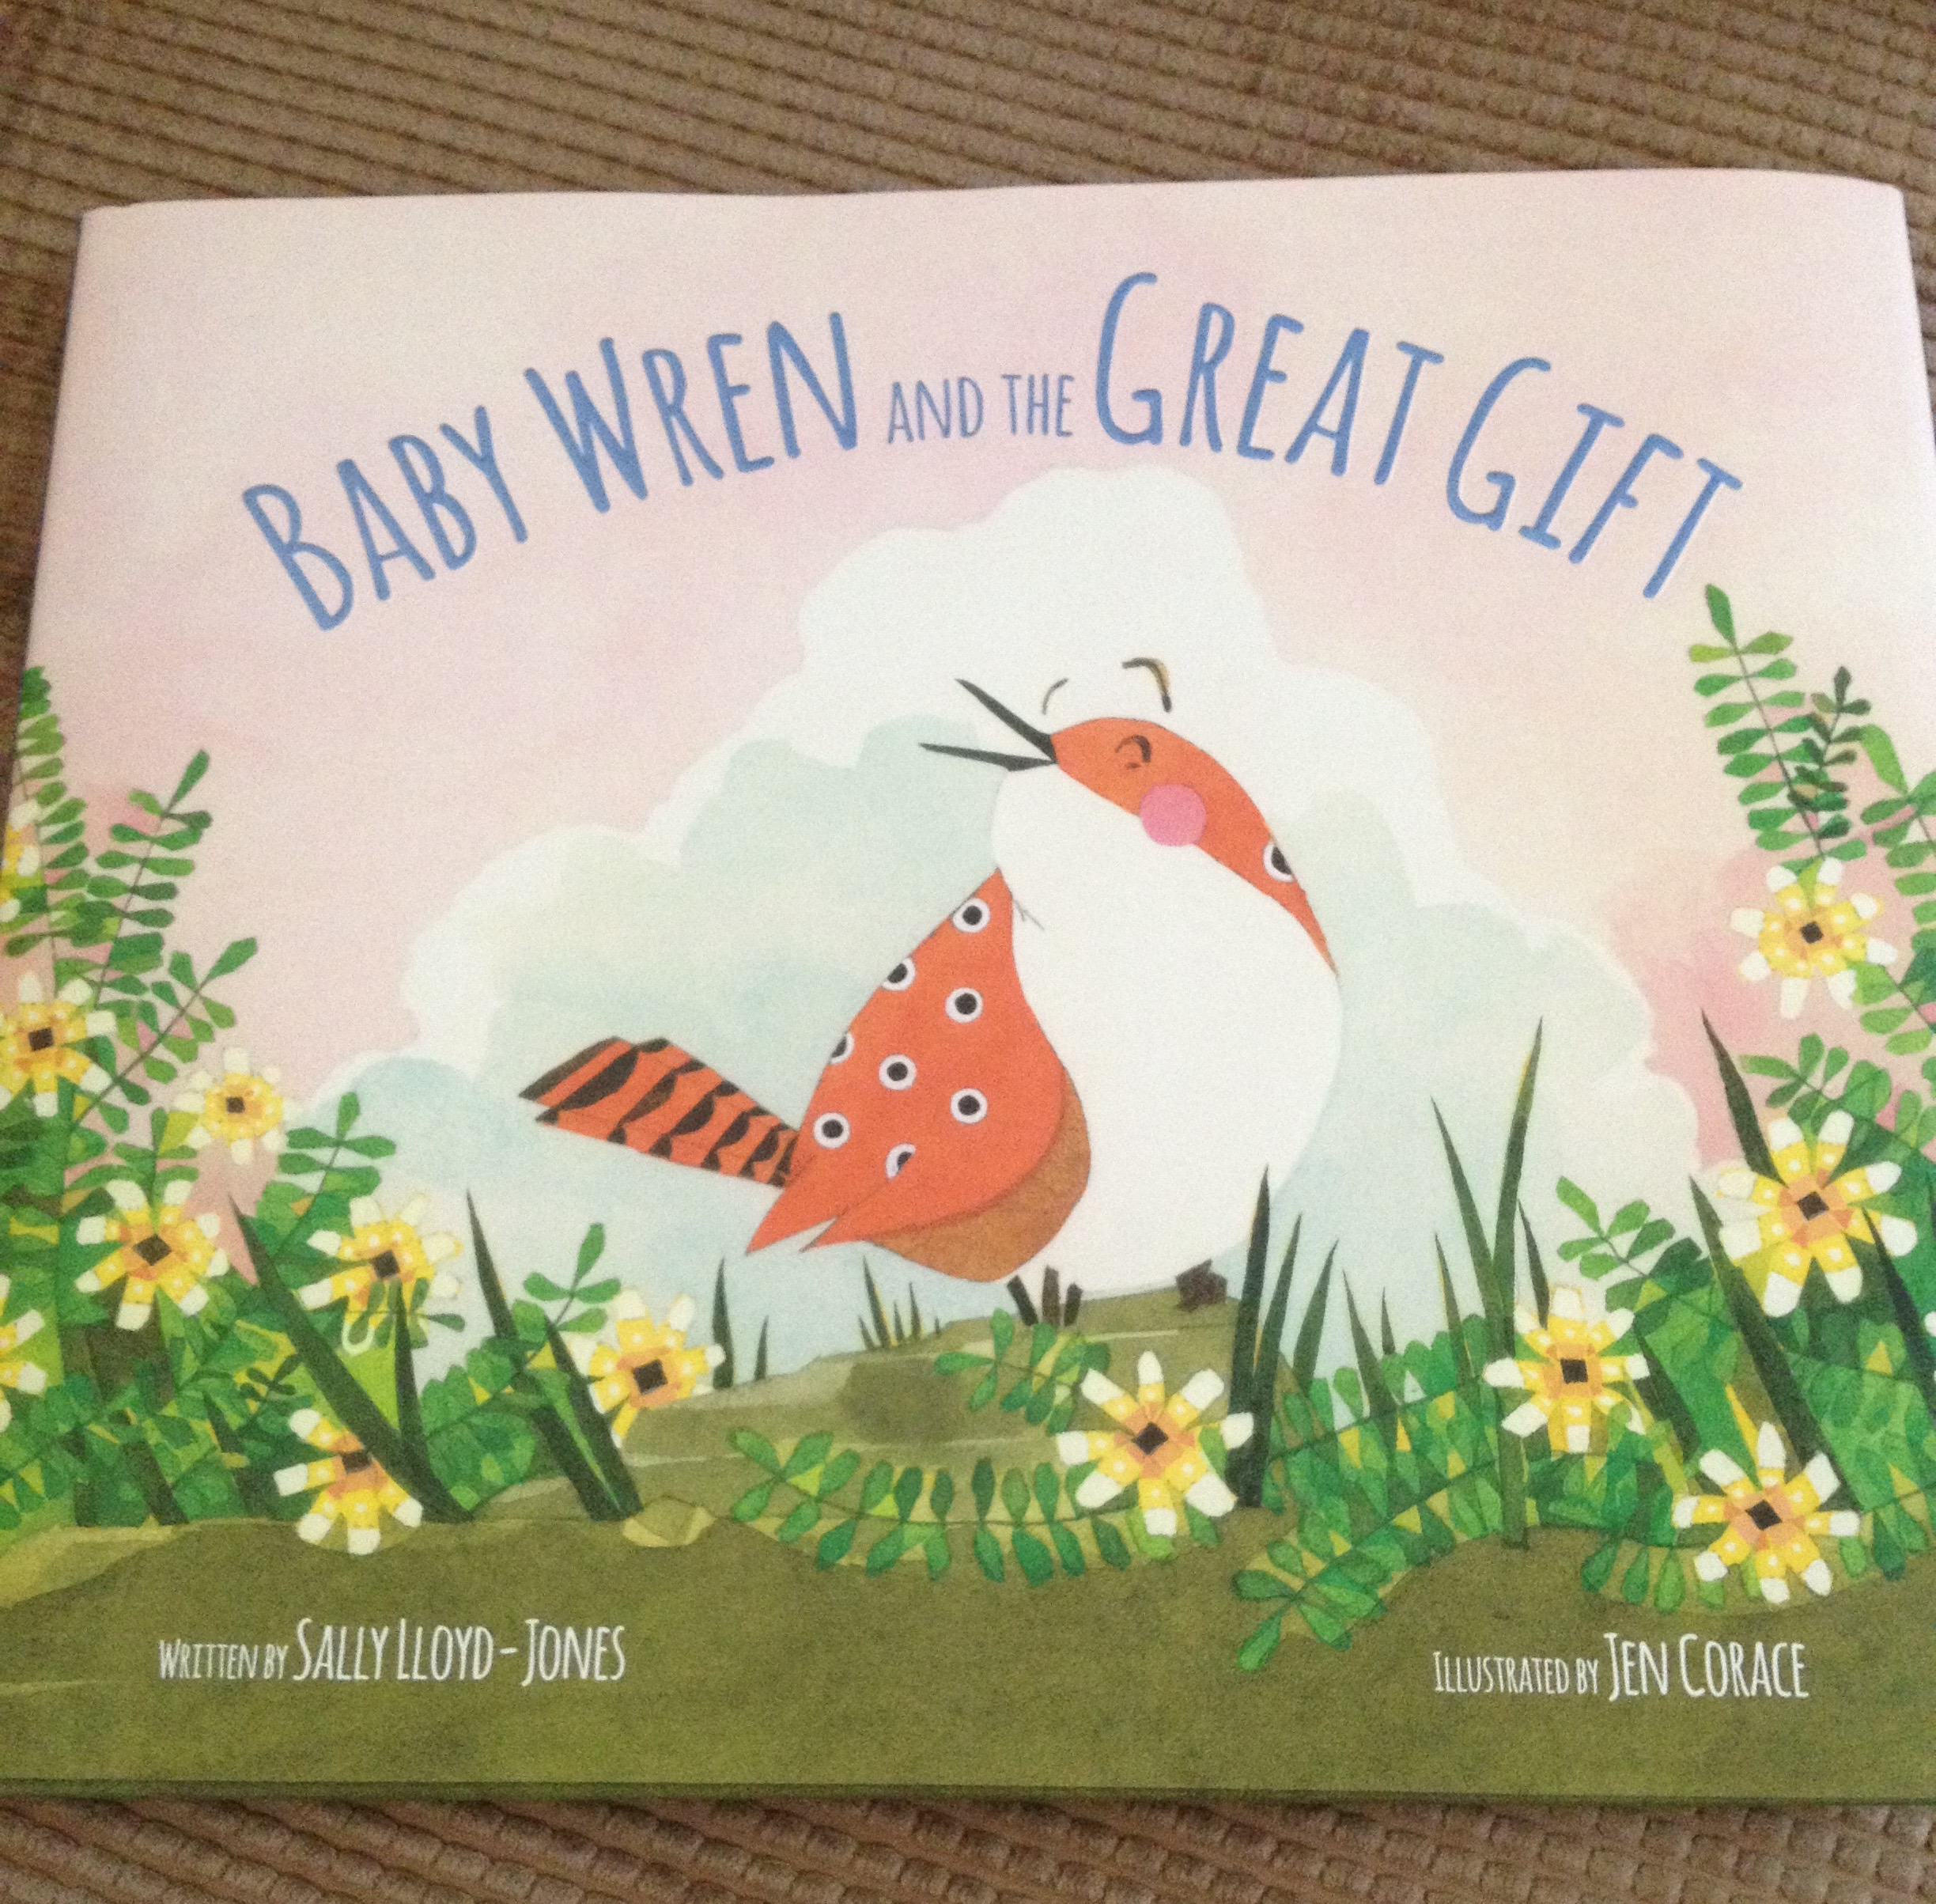 Baby Wren and the Great Gift: Book Review by The He Said She Said Experience